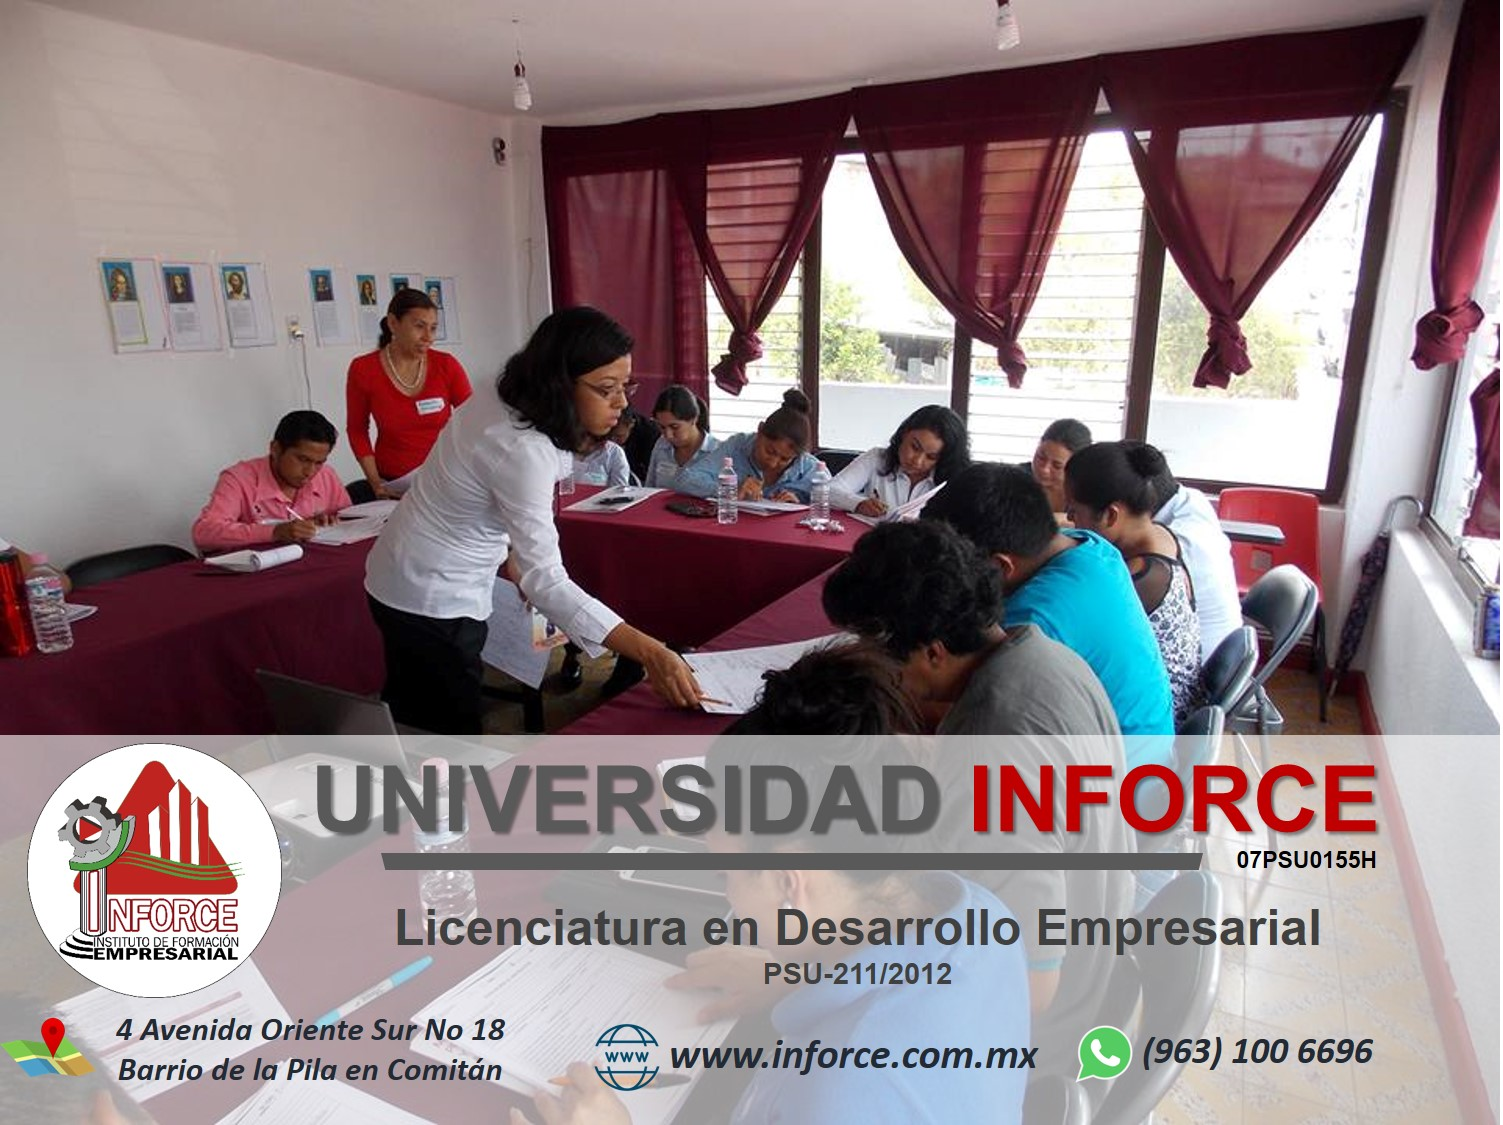 universida-inforce-comitan-instituto-de-formacion-empresarial-003.jpg